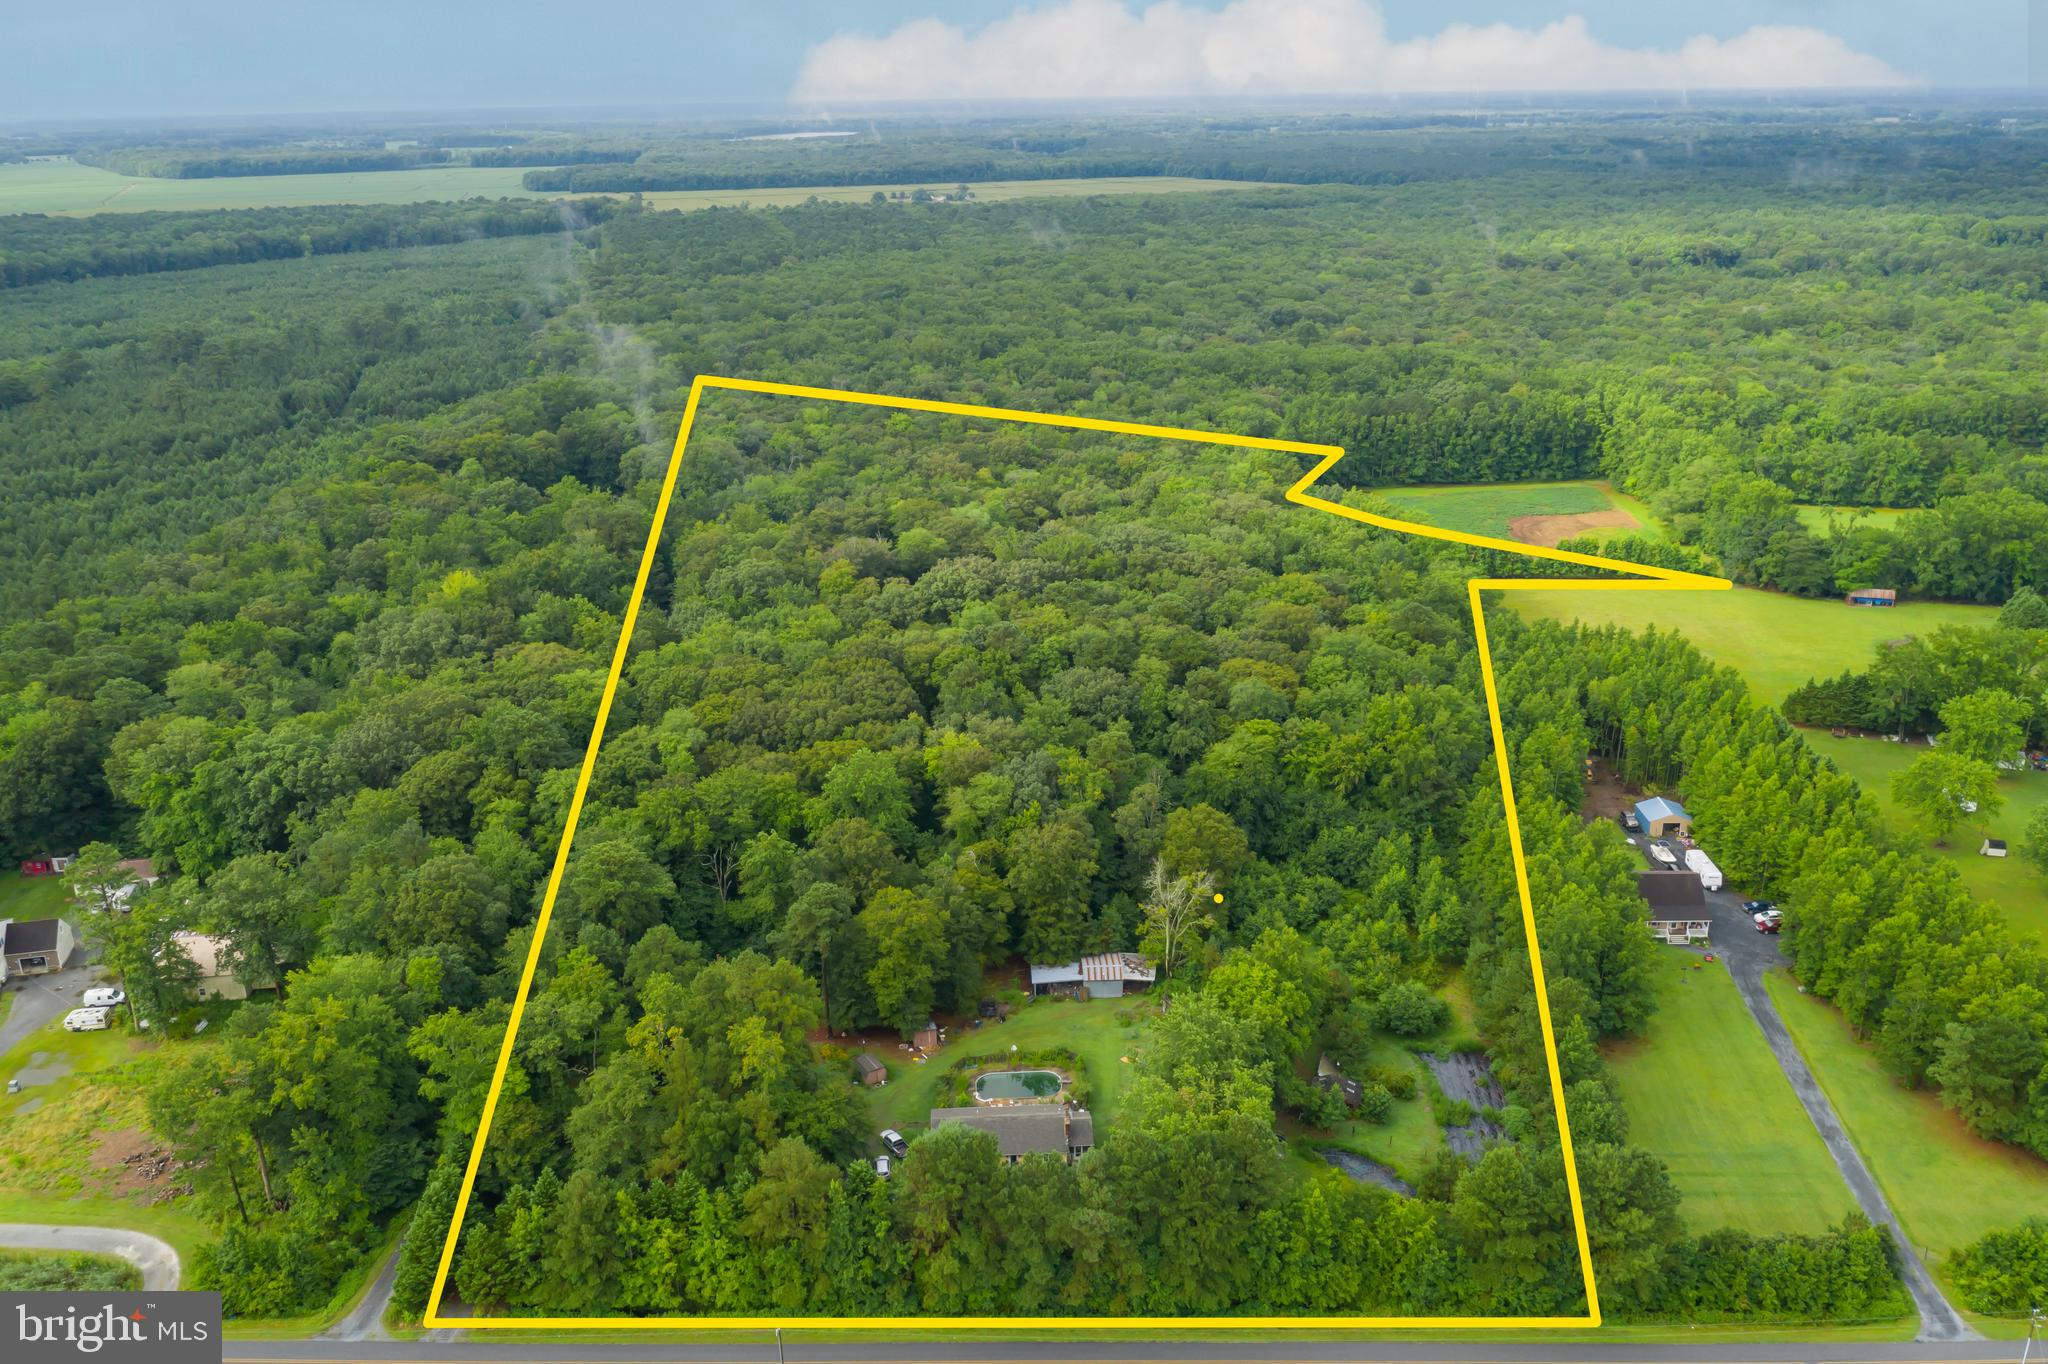 Opportunity abounds on 17.48 acres at 9036 Peerless Rd Whaleyville, MD. This property offers seclusion and is ideal for hunting, horses, trail riding and gardens all within 13 miles to the Ocean City beaches. The 3 bedroom 2. 1 bath home has a kitchen with an open dining, living room, gas fireplace, screened porch, and back yard deck with an in-ground pool. The home site includes a pole barn, pasture and barn, fencing, fishing pond and a kio pond. New roof in 2019. This is an Estate Sale and is being sold As-Is.